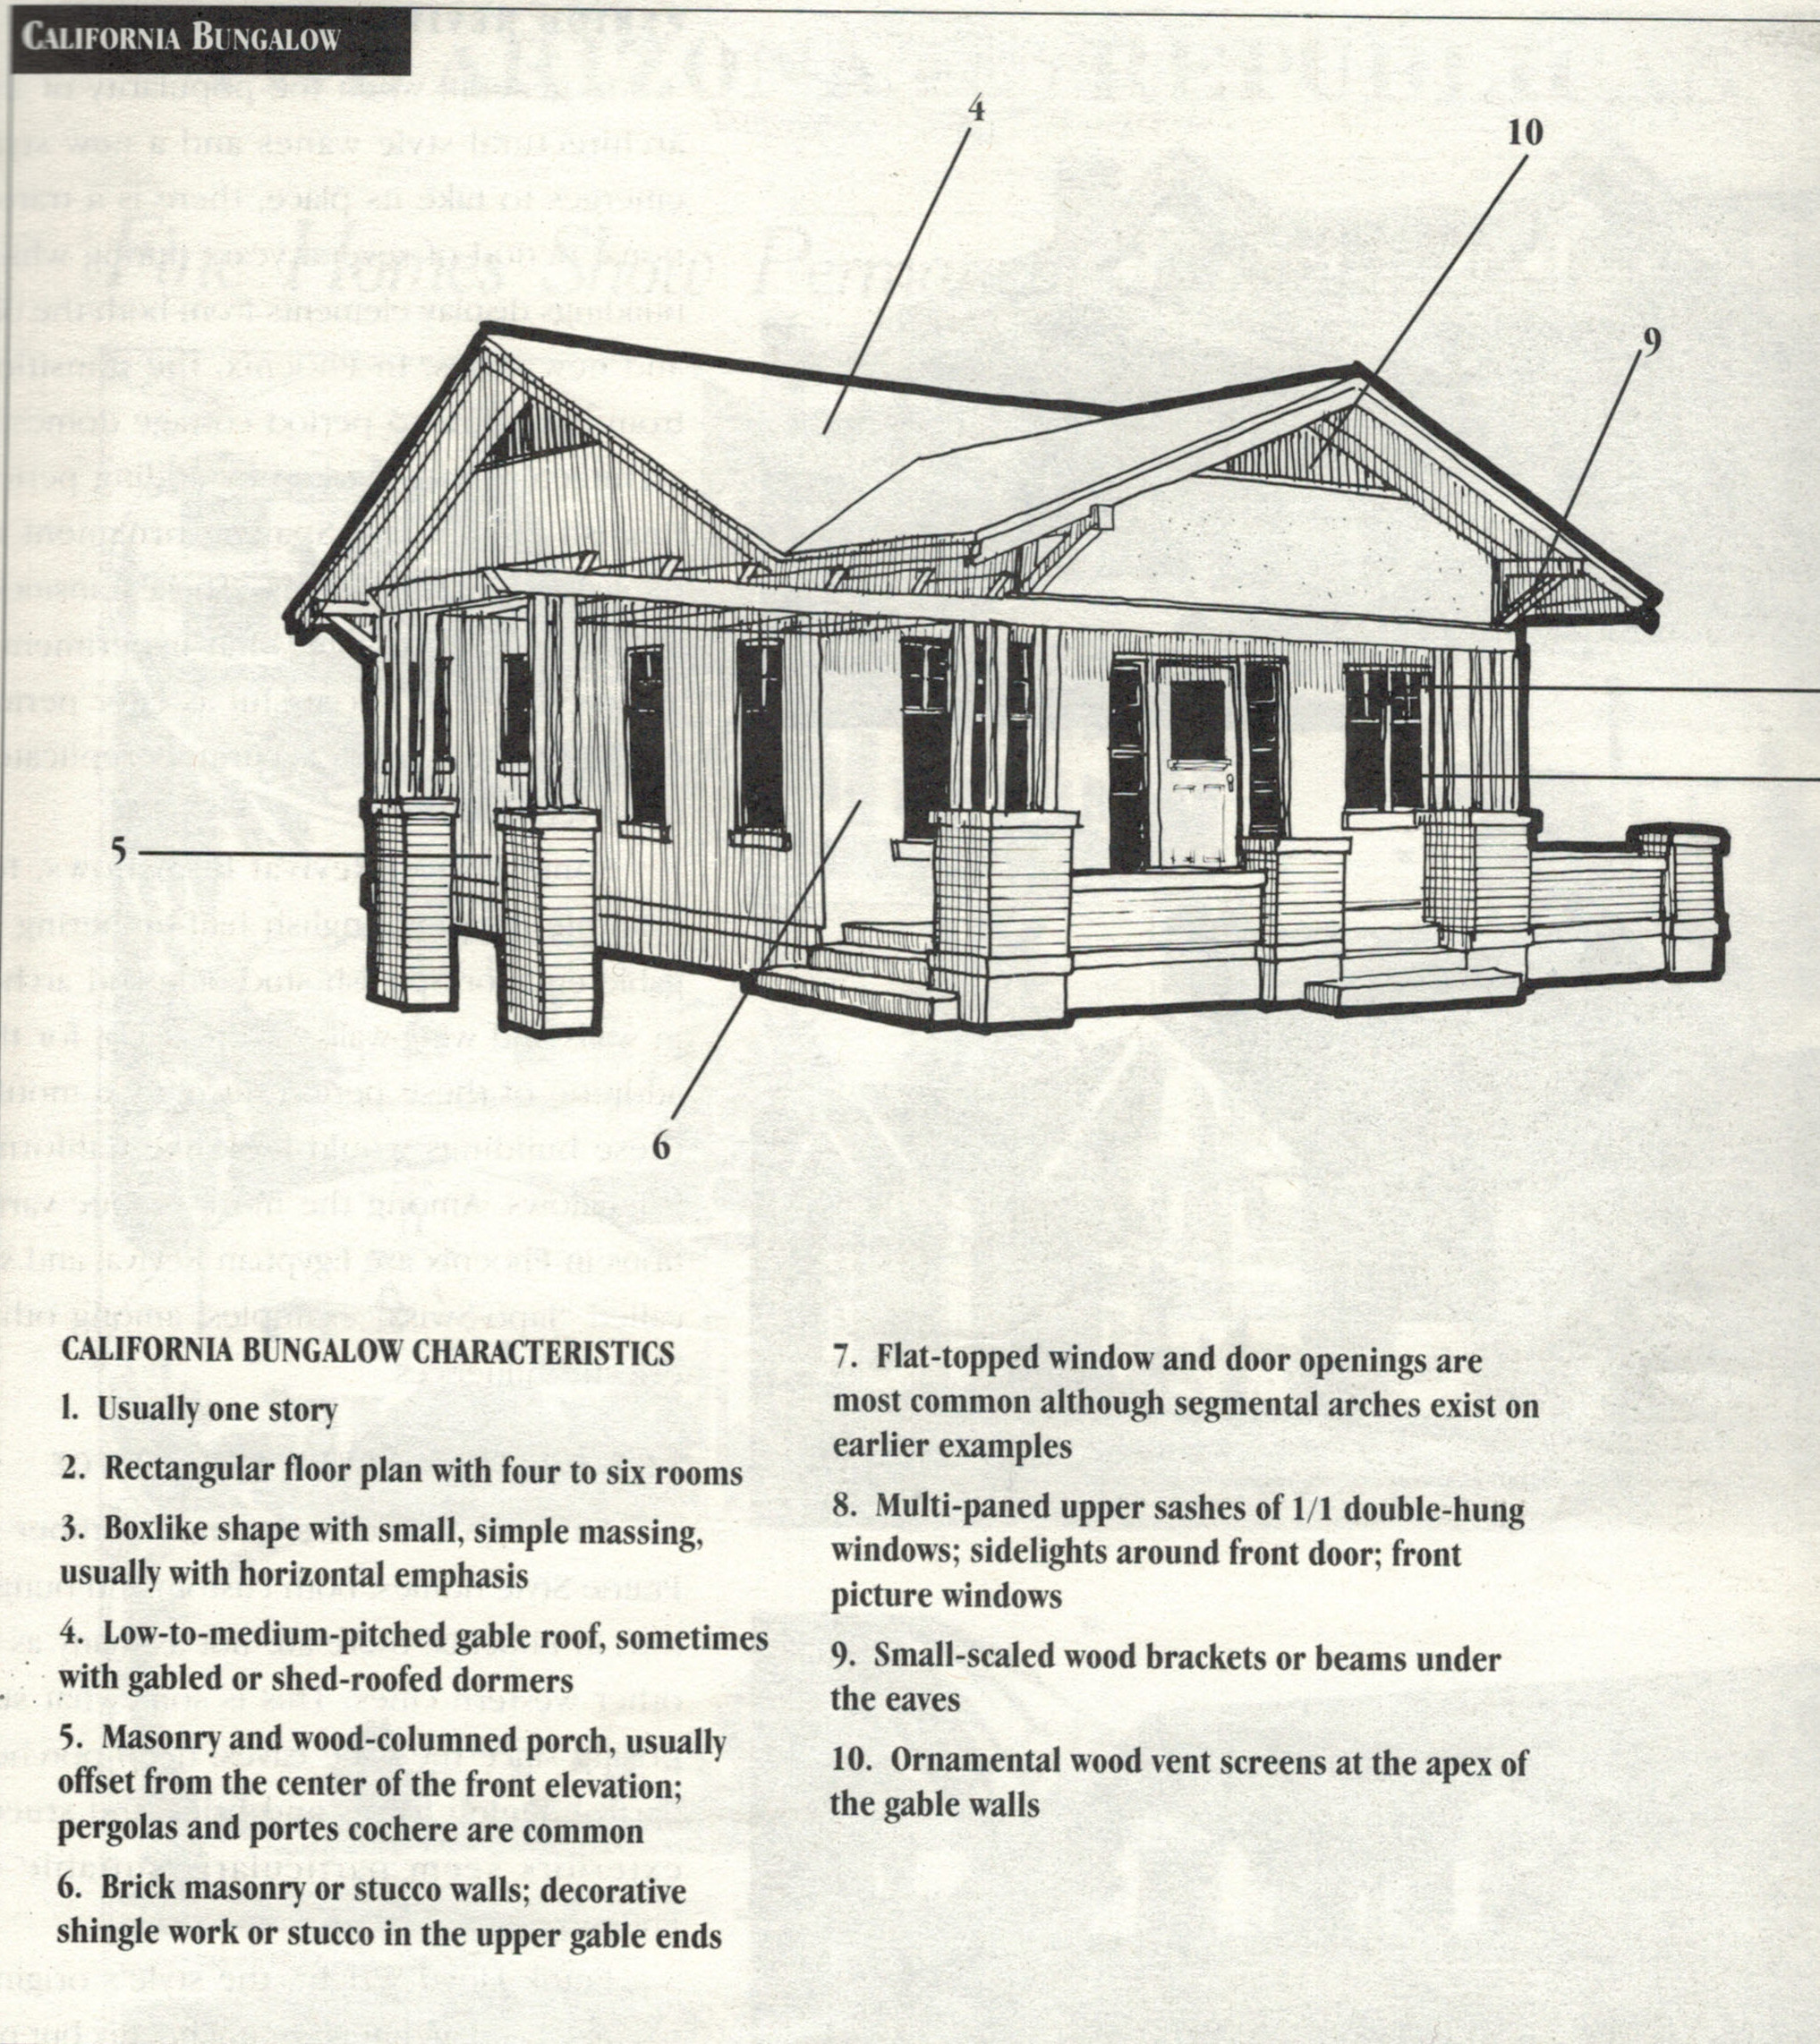 Craftsman Style Homes San Diego Vintage Homes – Craftsman Bungalow House Plans 1930S